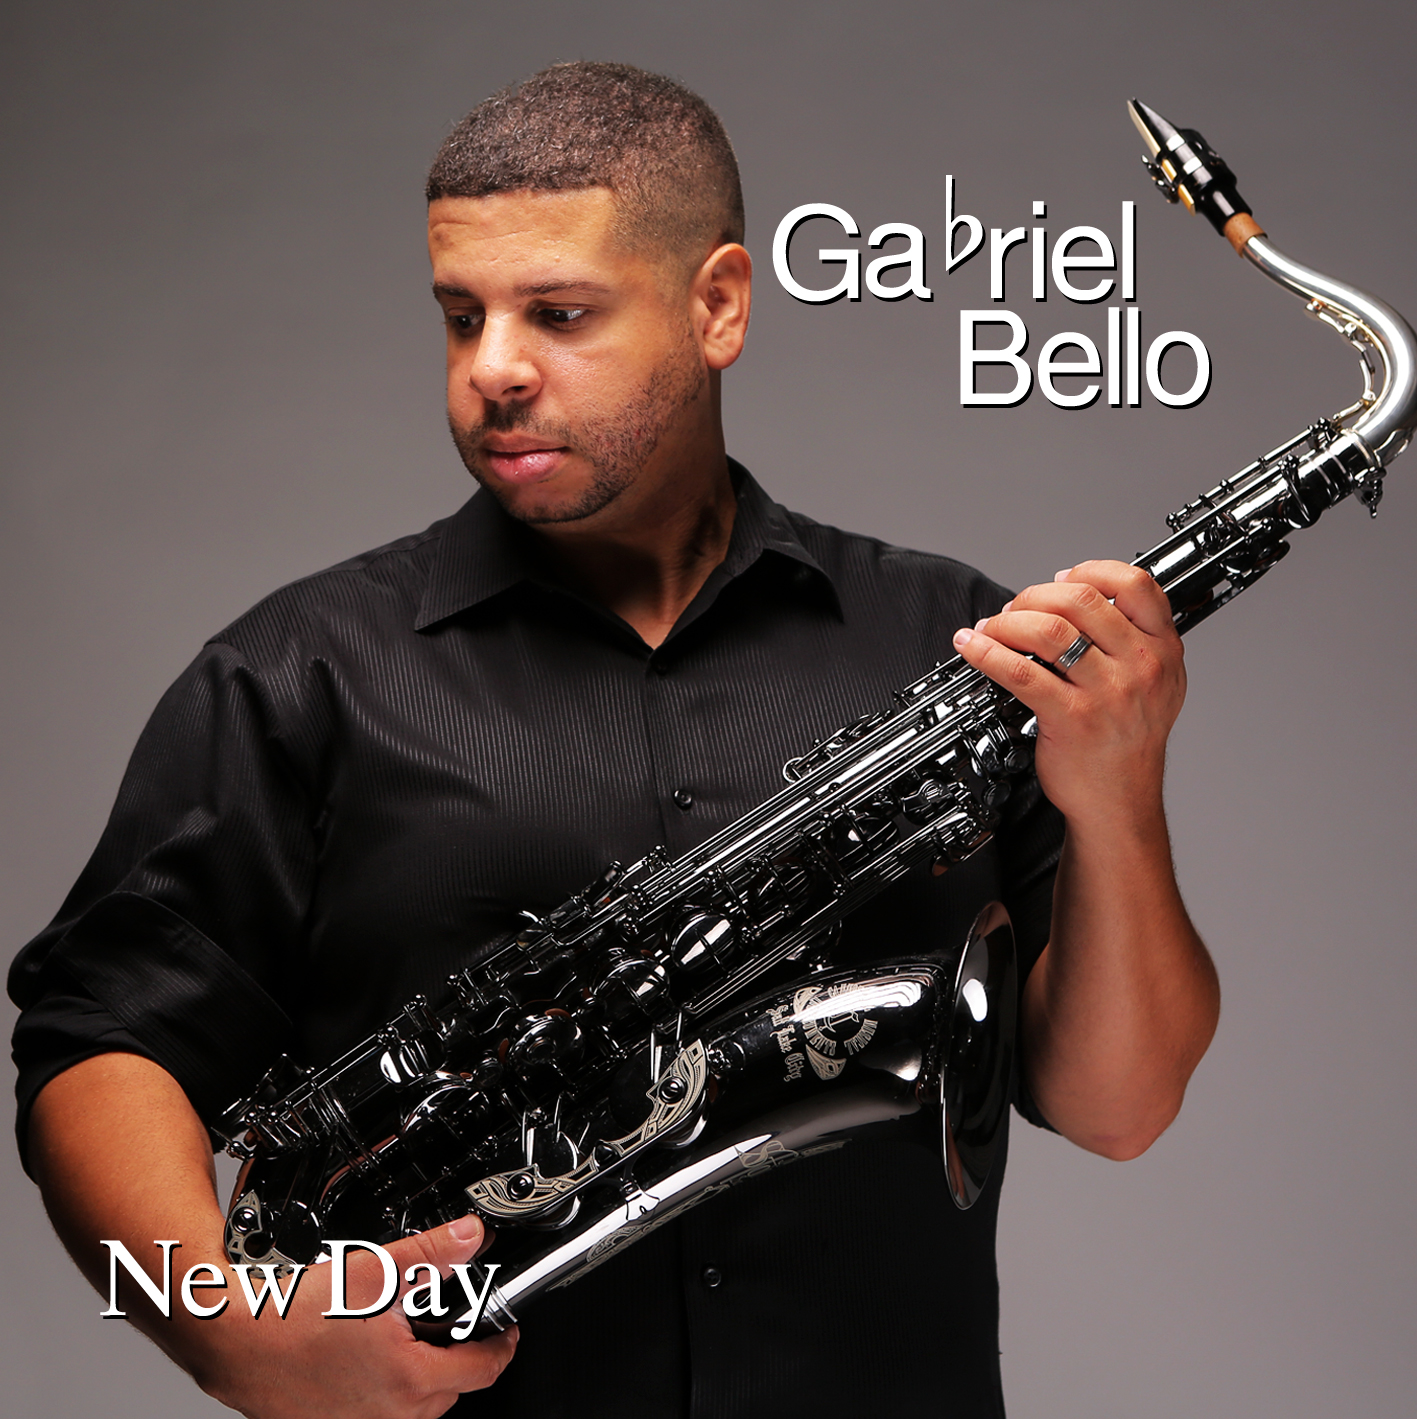 Gabe-New-Day-Cover-flat.jpg